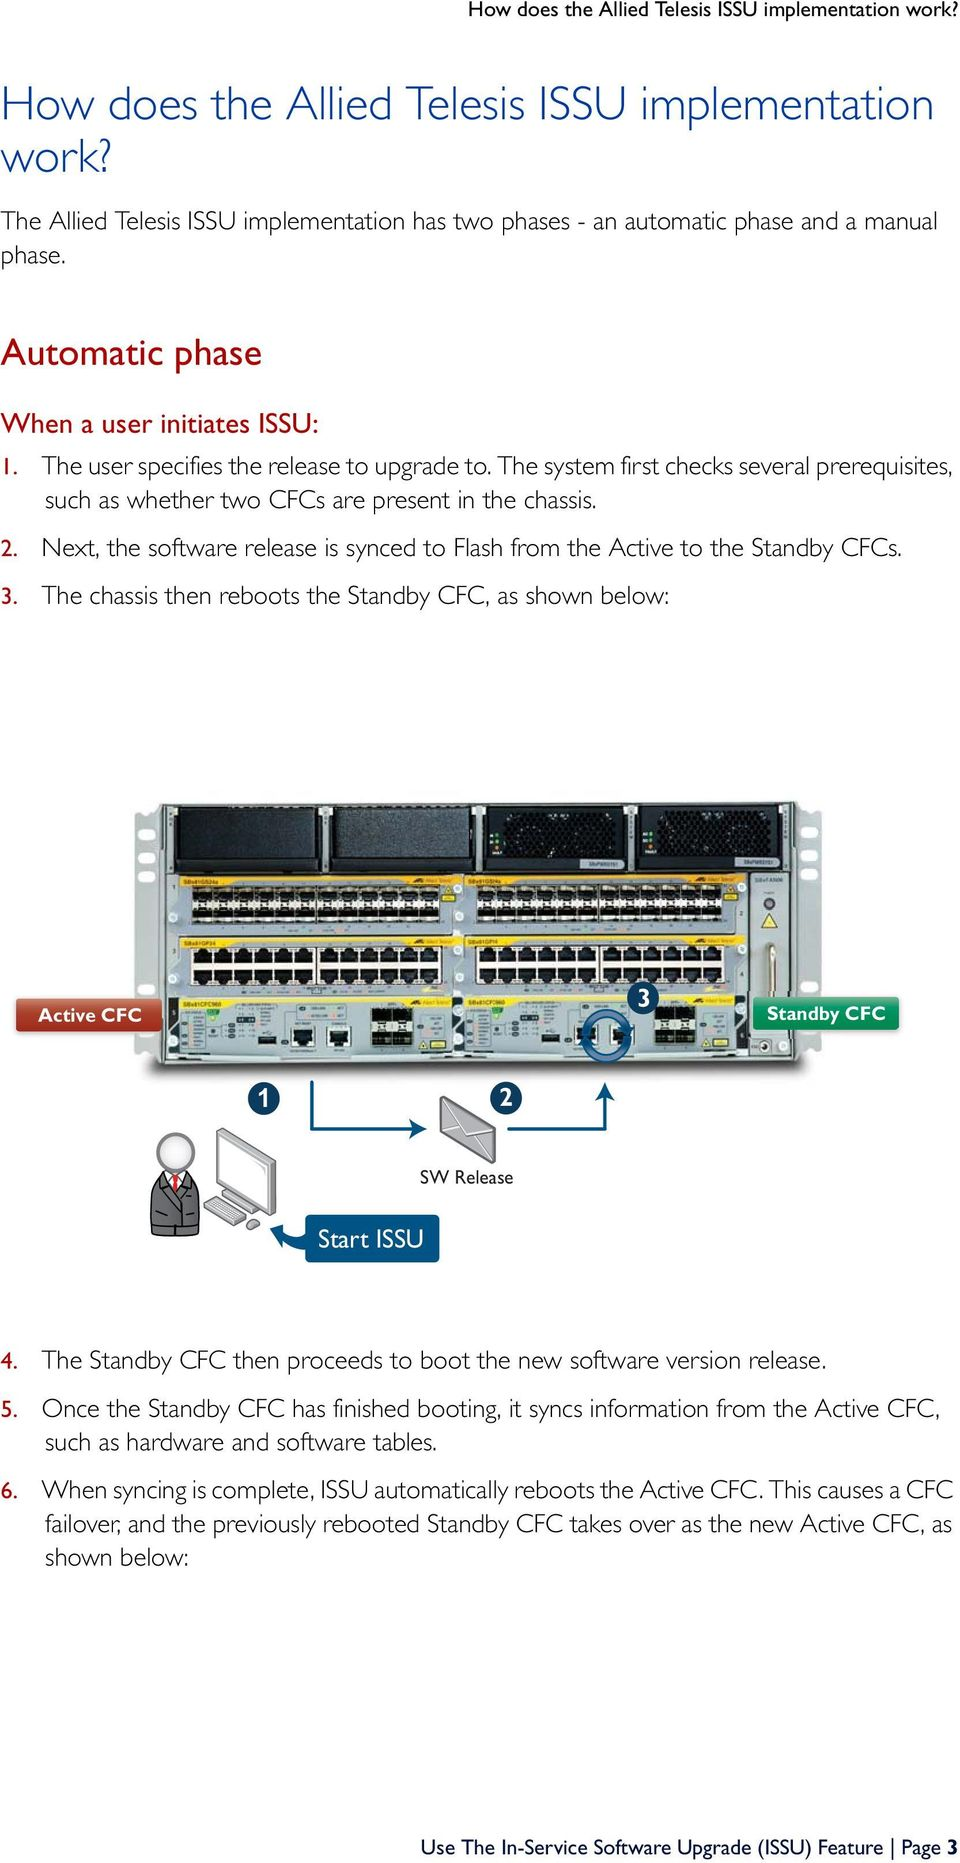 The system first checks several prerequisites, such as whether two CFCs are present in the chassis. 2. Next, the software release is synced to Flash from the Active to the Standby CFCs. 3.